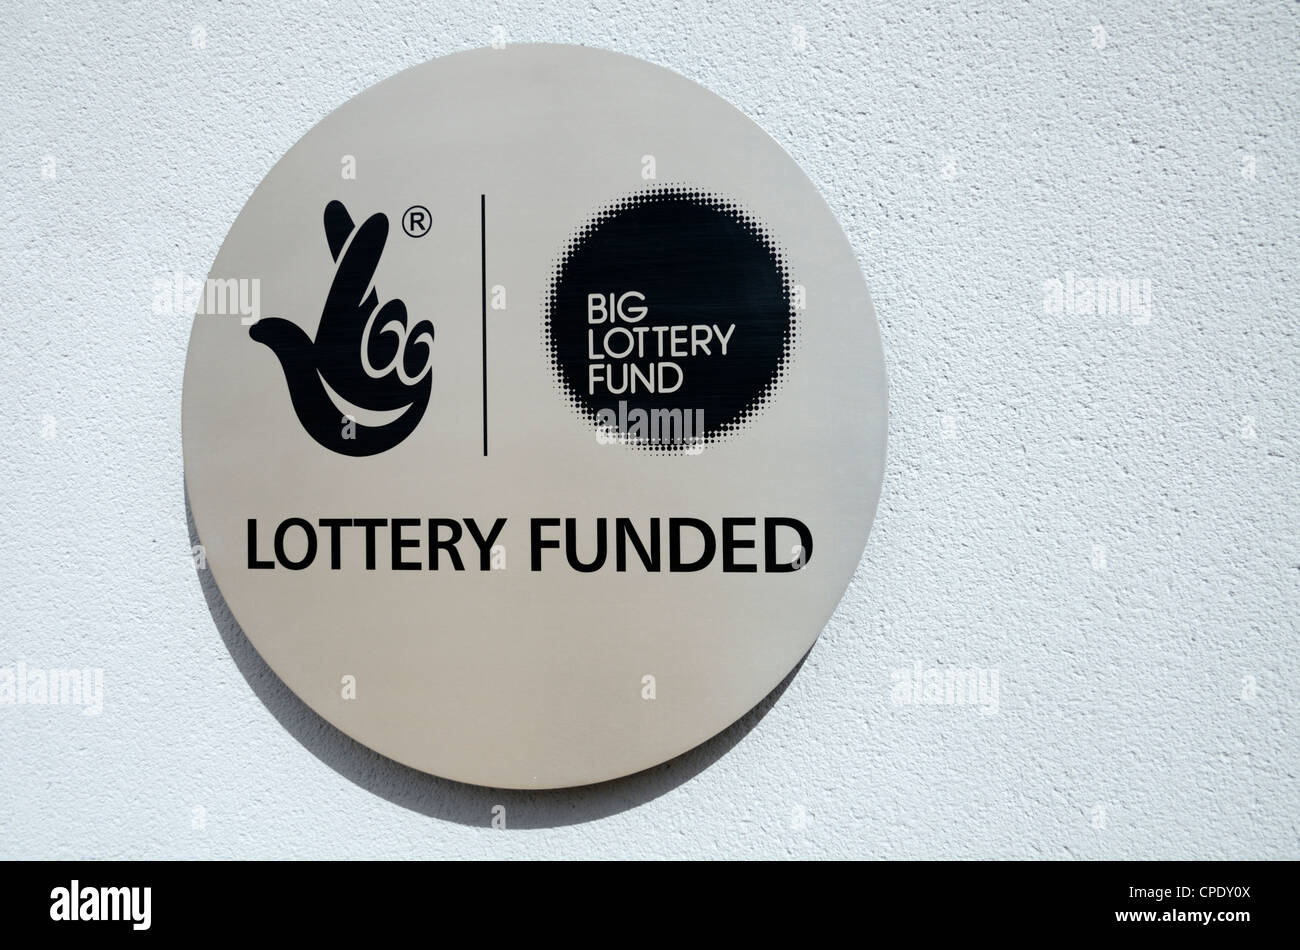 A ' Lottery Funded ' plaque - Stock Image